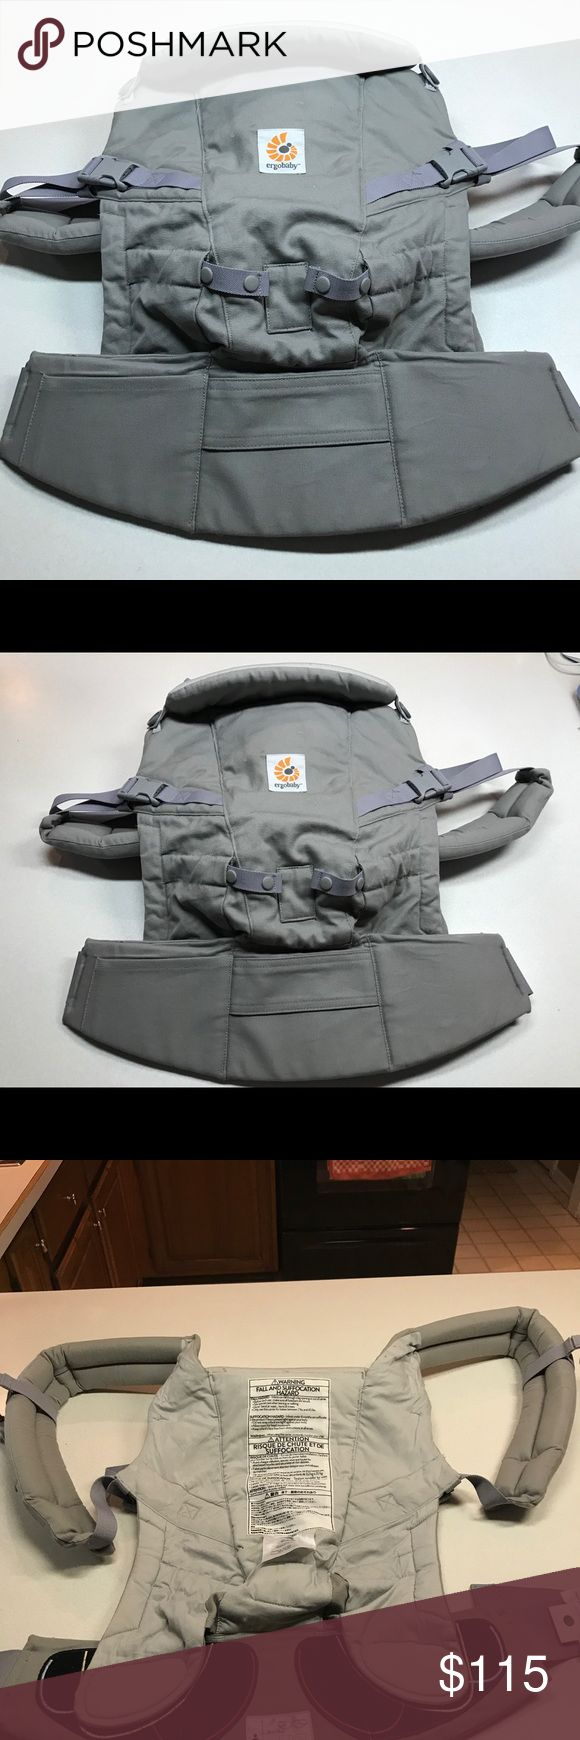 Ergobaby Adapt Ergonomic Baby Carrier Ergobaby Adapt Award Winning Ergonomic Multi-Position Baby Carrier, Newborn to Toddler in Pearl Grey in like-new condition, used only one time. It's a great product perfect for the fall to use with your new baby! Ergo Accessories